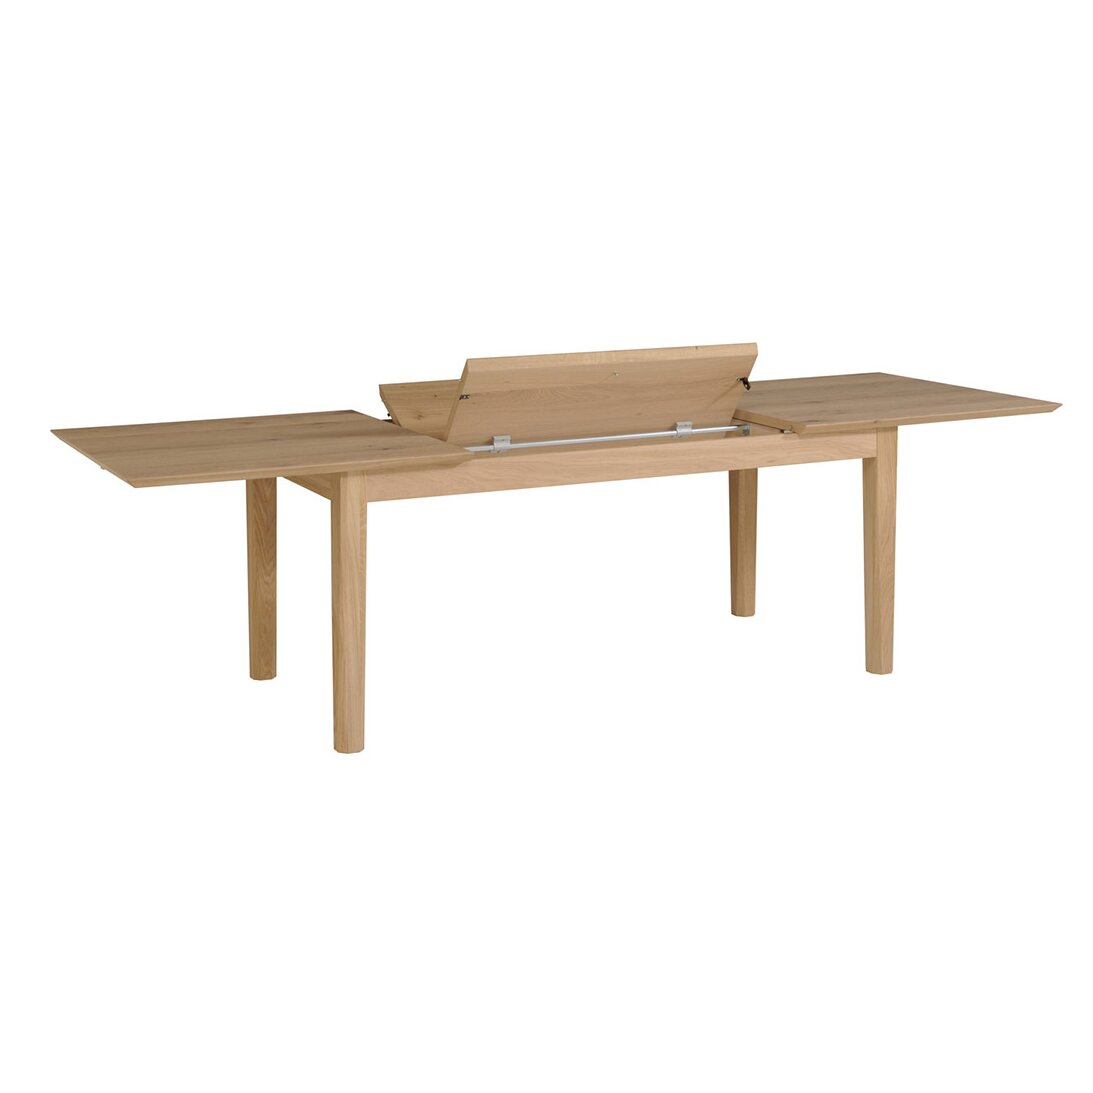 Parisot stockholm extendable dining table wayfair for Wayfair dining table